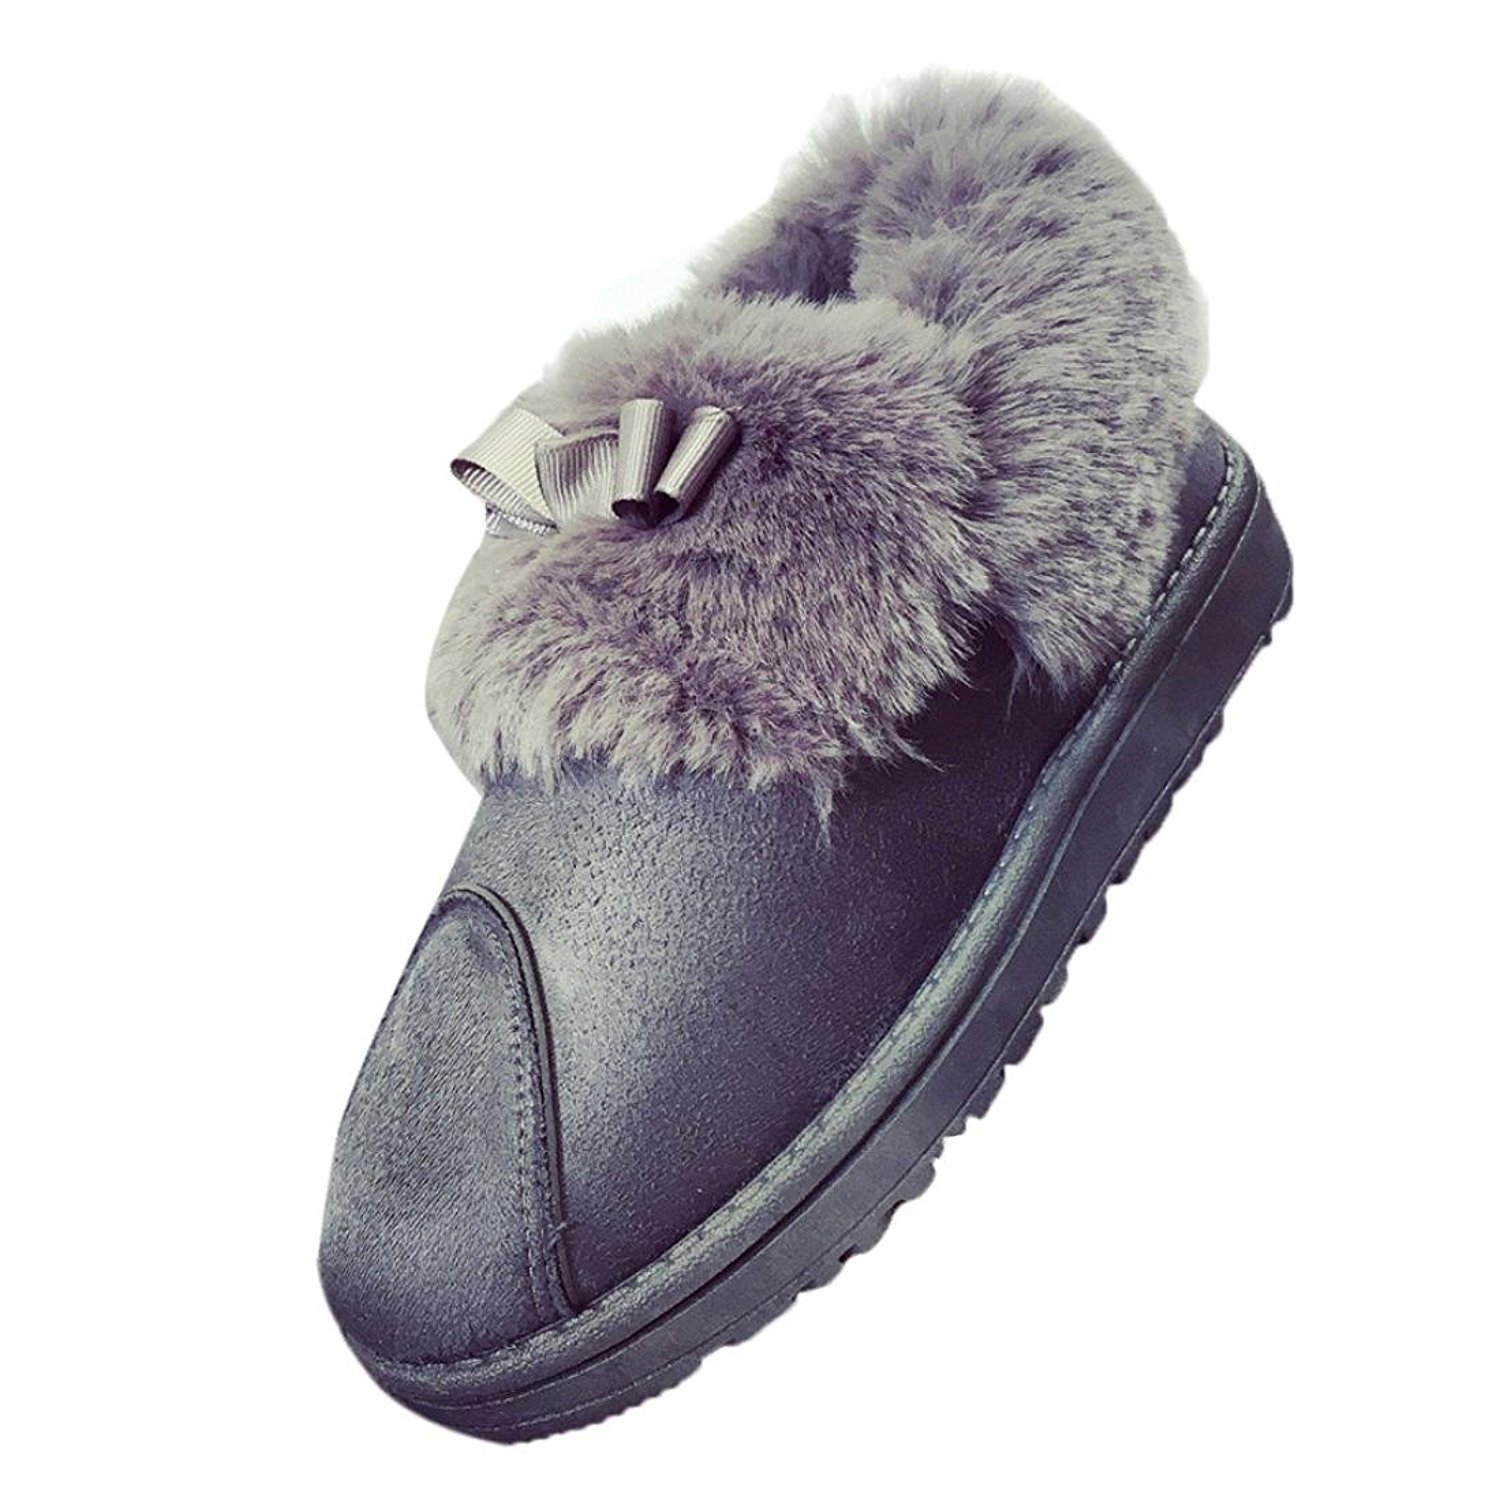 DEESEE(TM) Women Flat Lace Up Fur Lined Winter Martin Boots Snow Ankle Boots Shoes (US 5.5, Gray)